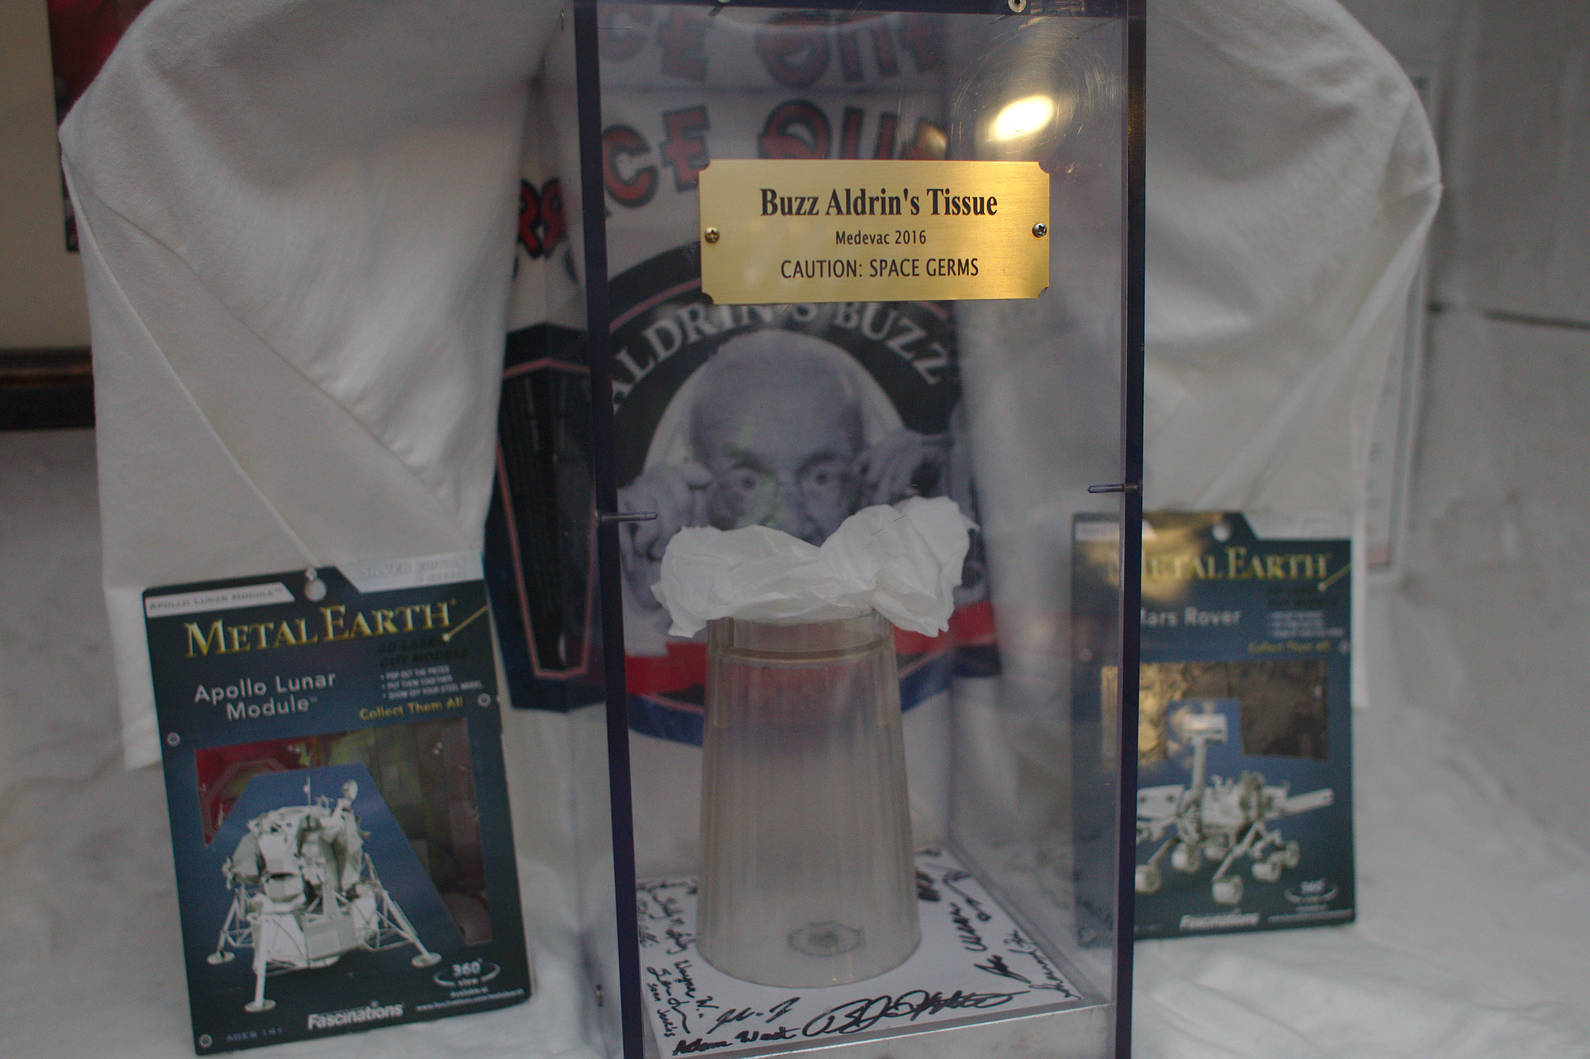 Some of the 2016/2017 summer crew set up a shrine commemorating the visit of Buzz Aldrin to south pole station, humorously displaying a tissue and a cup used by the former astronaut.